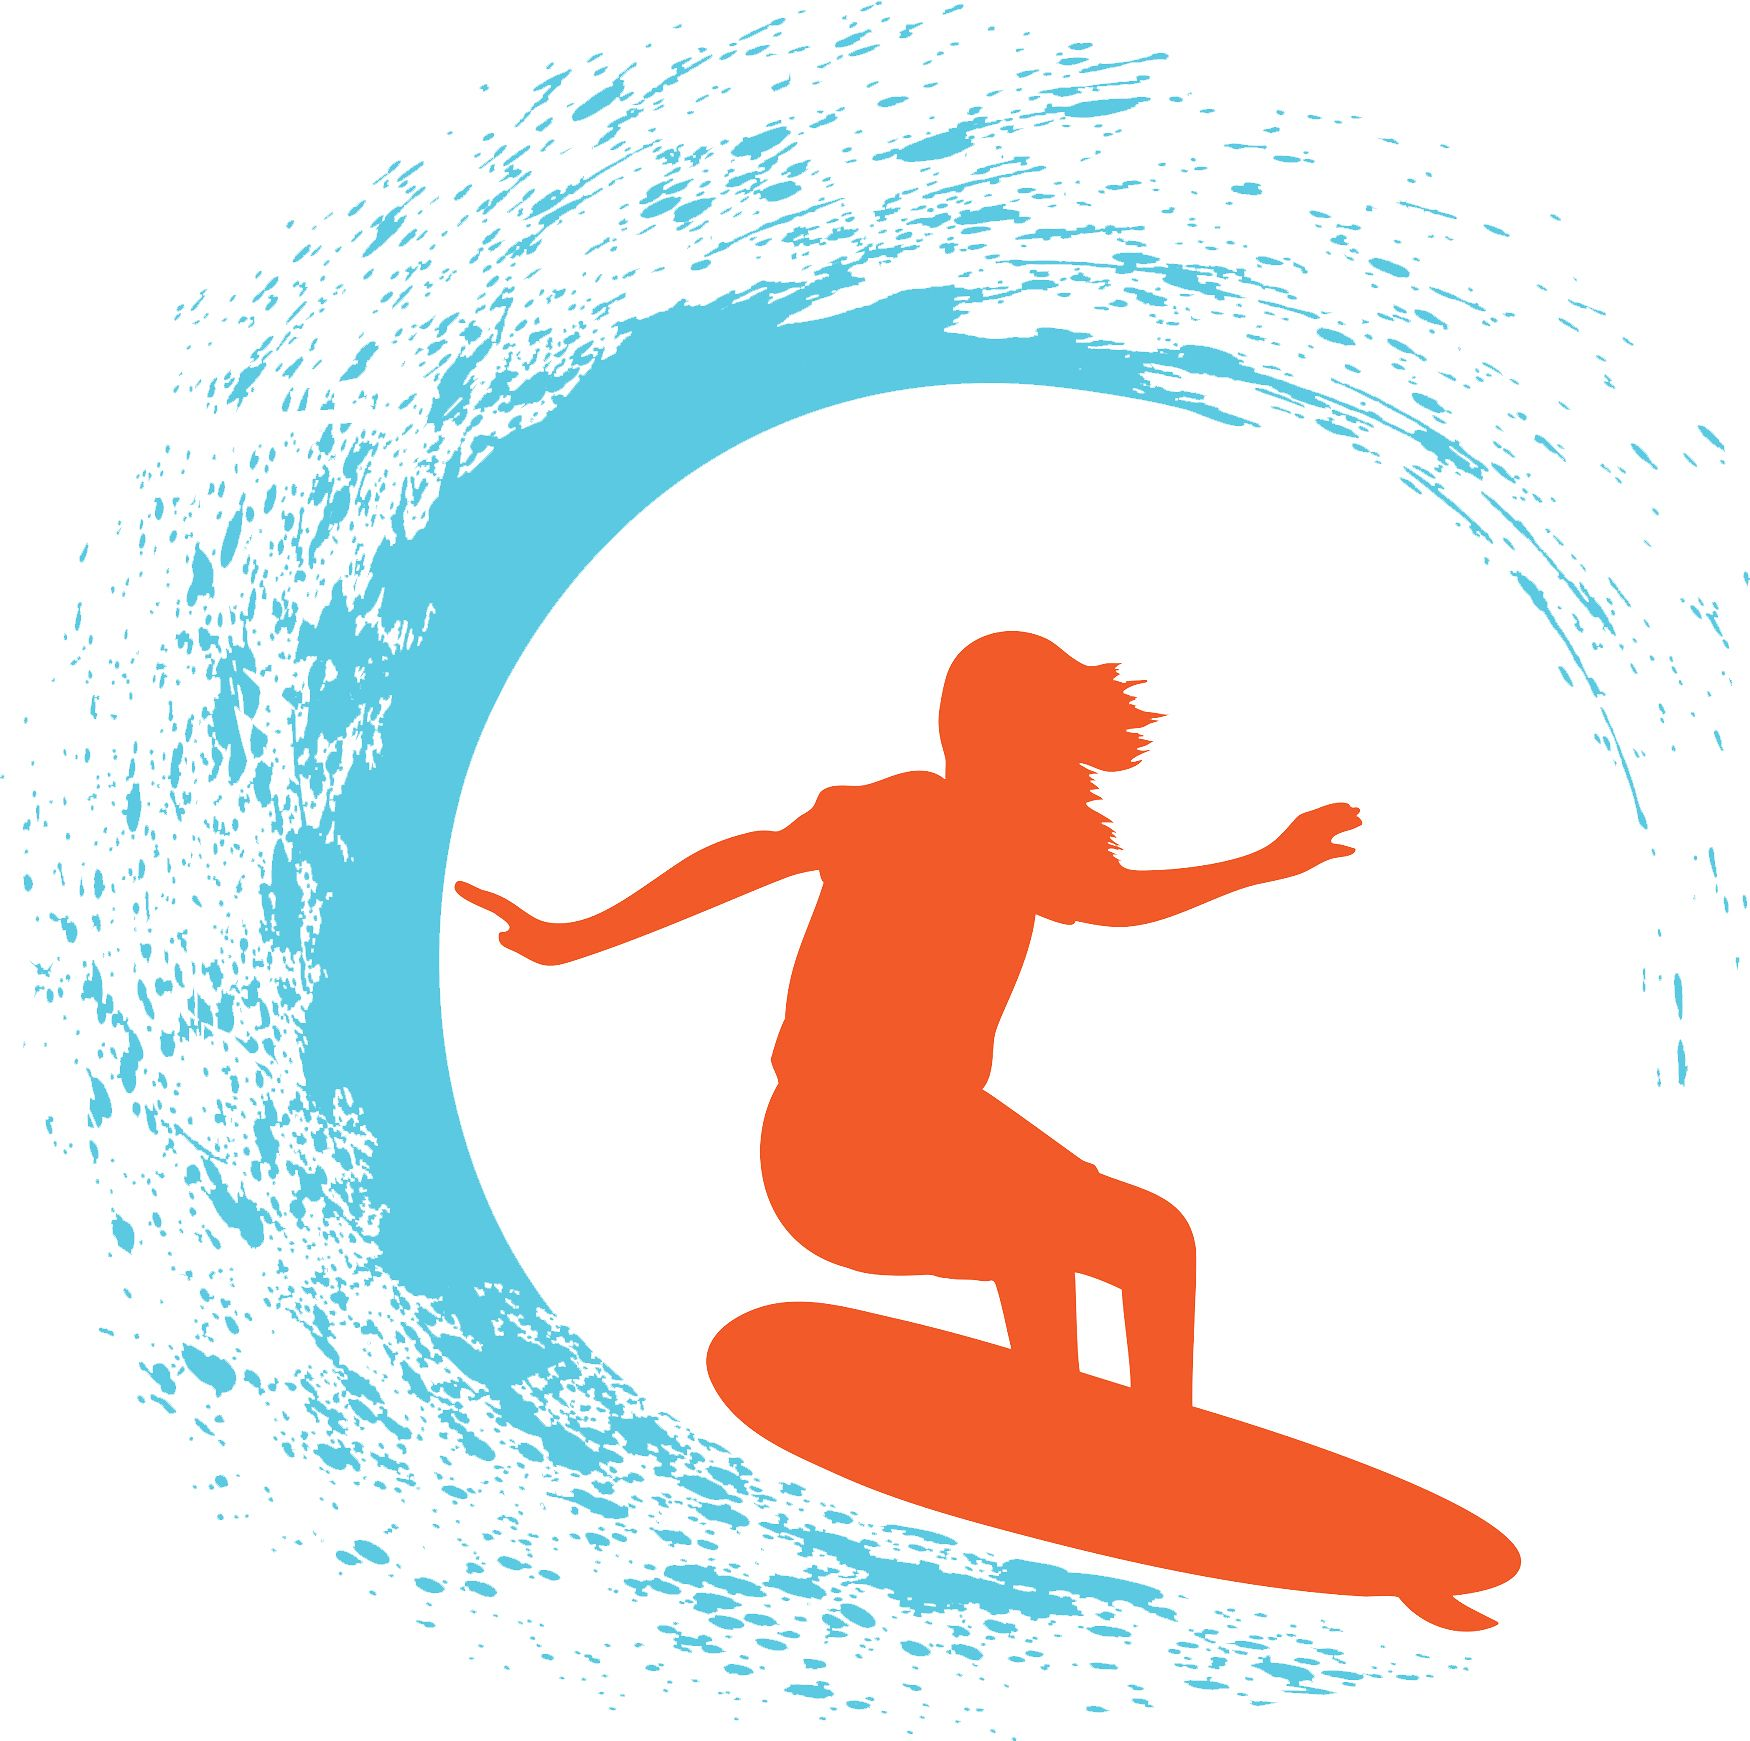 Create surfer designs using the clip art from the Decorating.